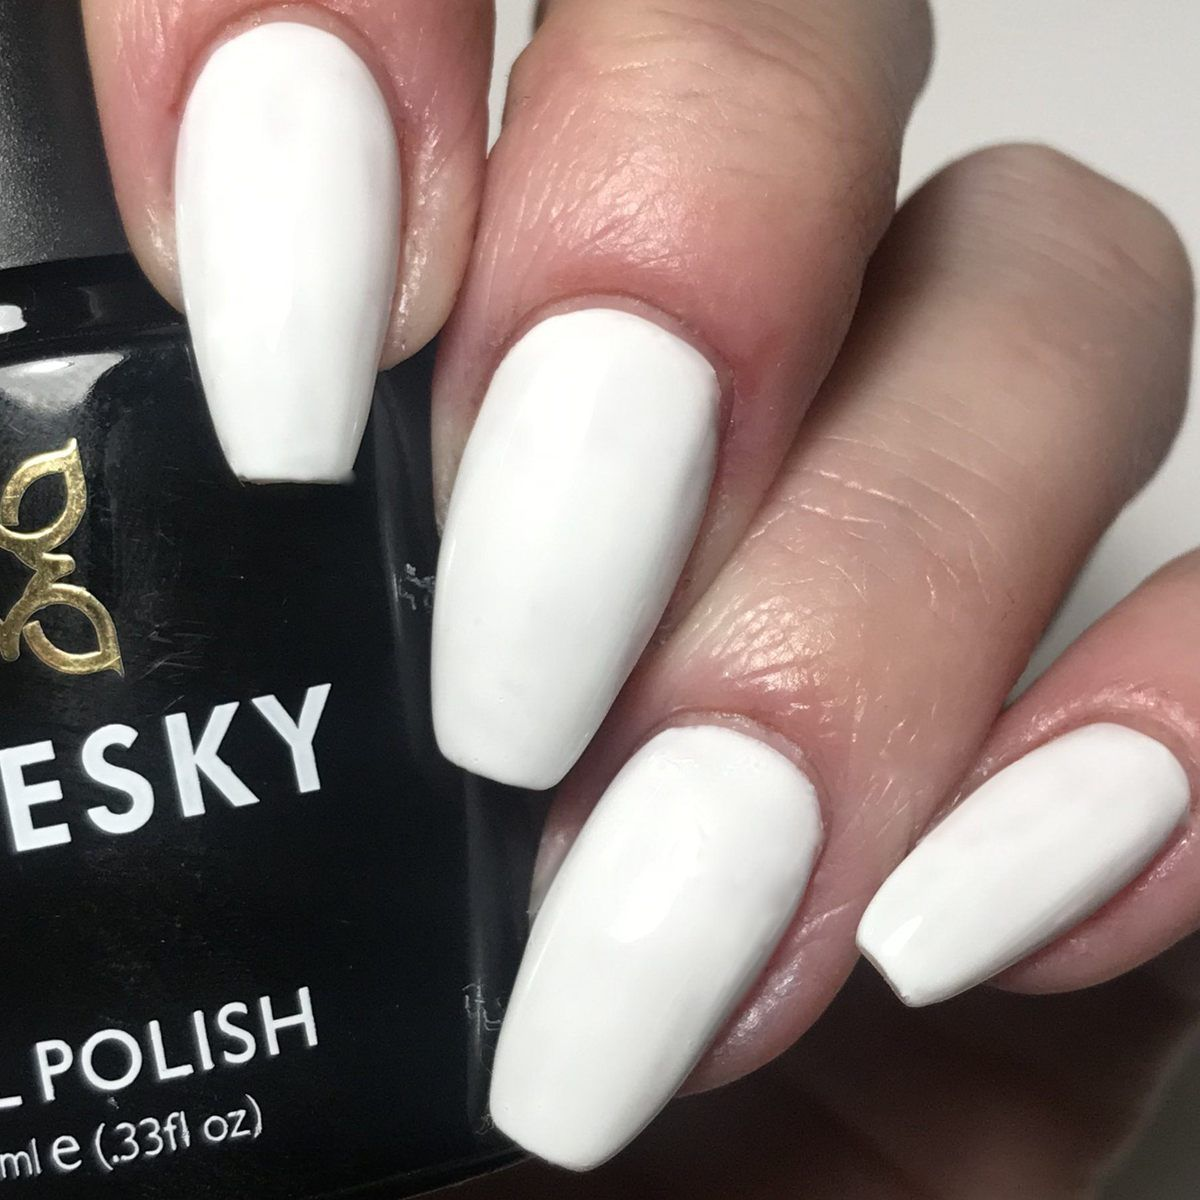 Why Does My White Gel Nail Polish Turn Yellow? How to Fix